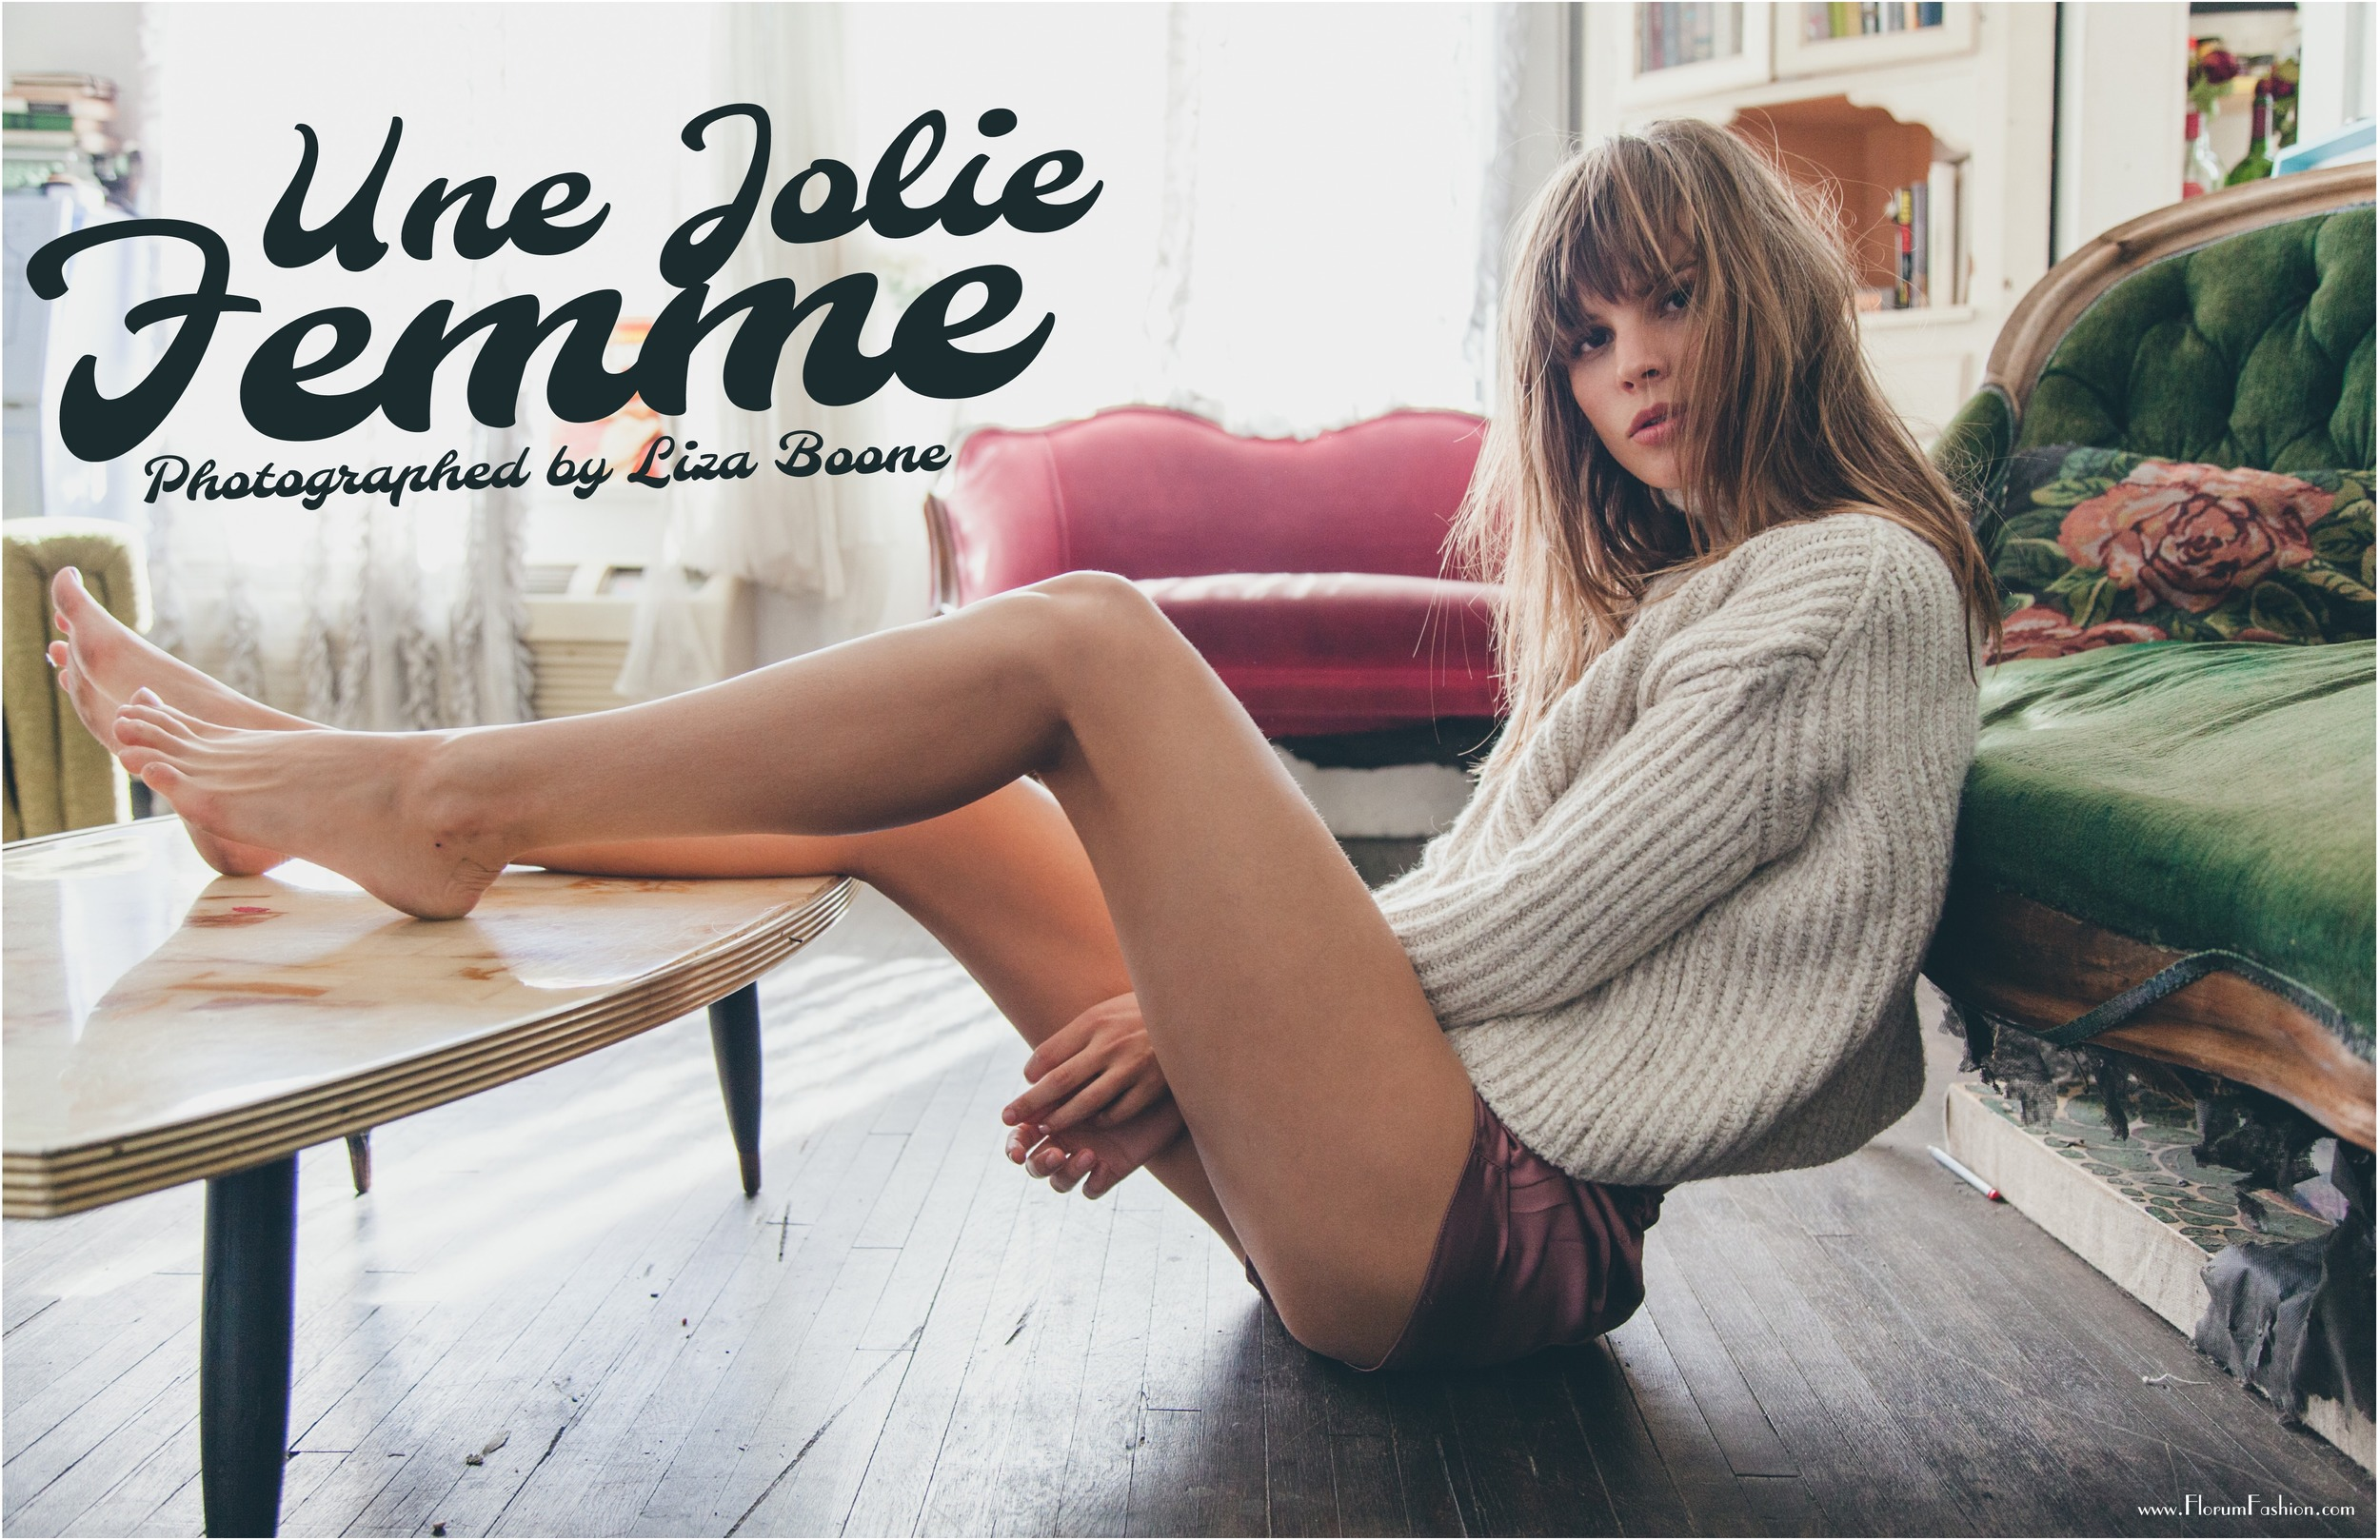 Une+Jolie+Femme+by+Liza+Boone+for+Florum+Fashion+Magazine-5.jpg